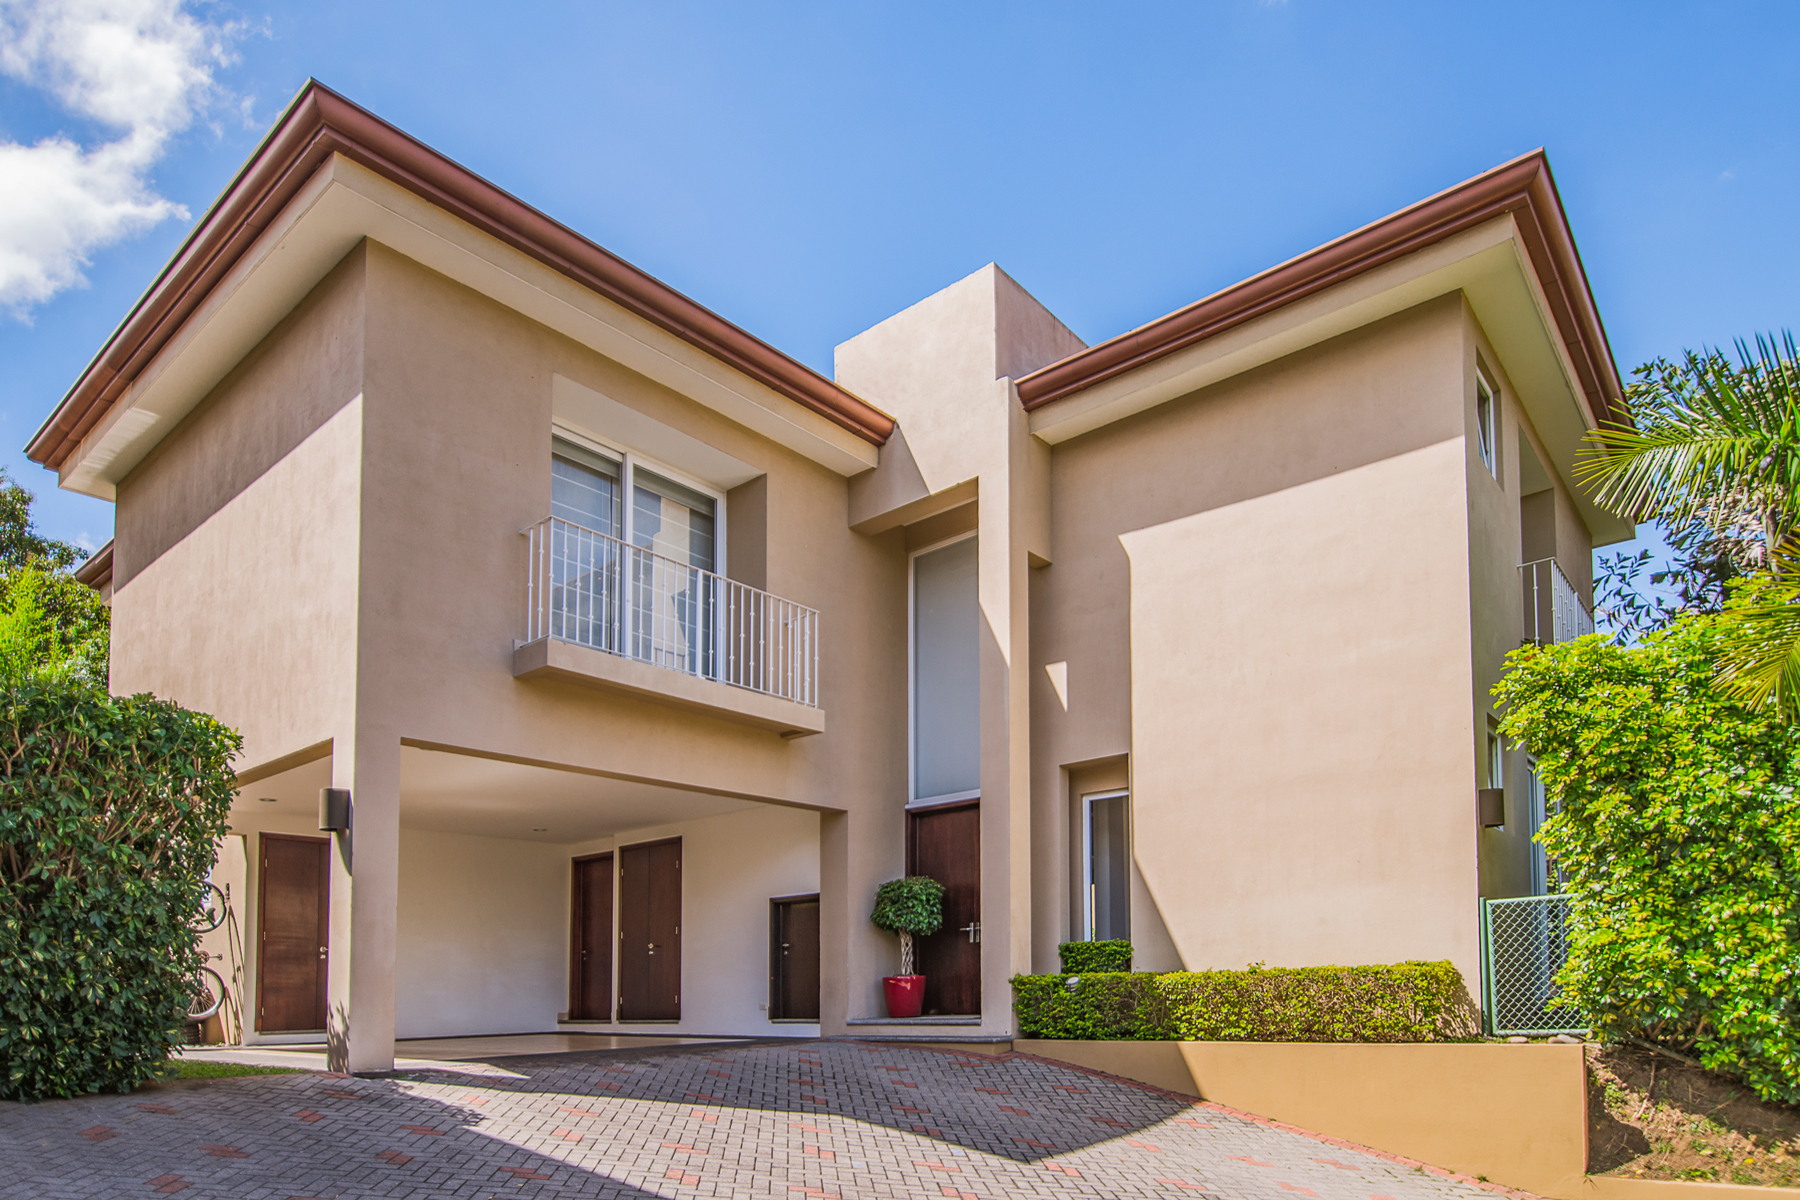 Single Family Home for Sale at 4B/5B Family Home in Gated Community, house for sale in Escazú, San José Escazu, San Jose Costa Rica